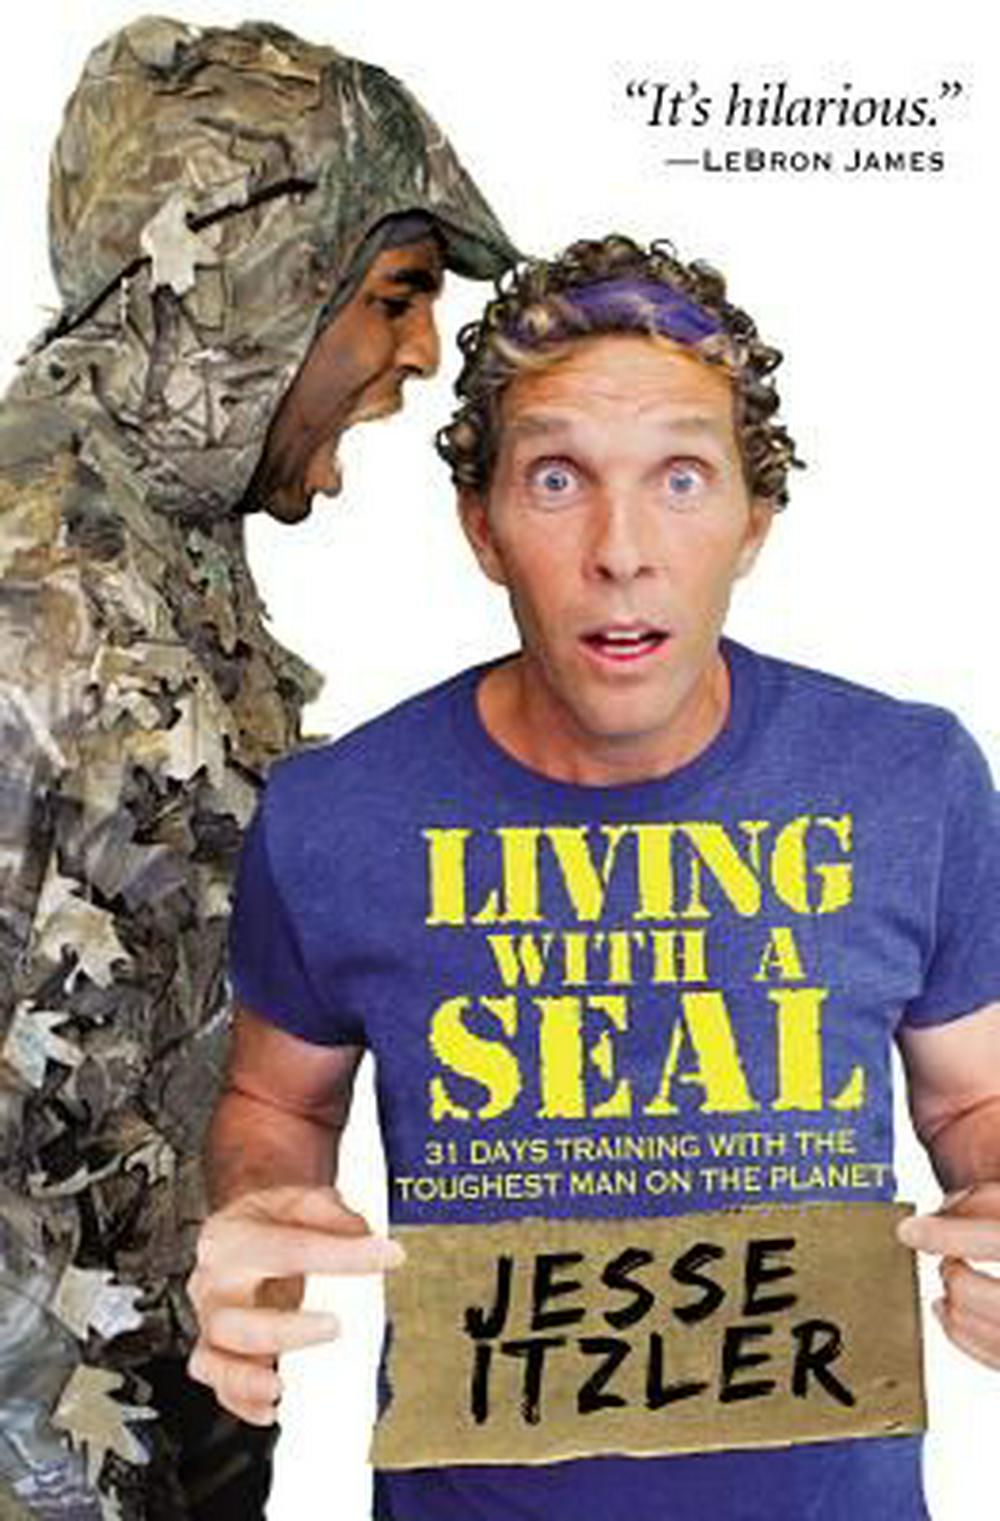 Living with a Seal31 Days with the Toughest Man on the Planet